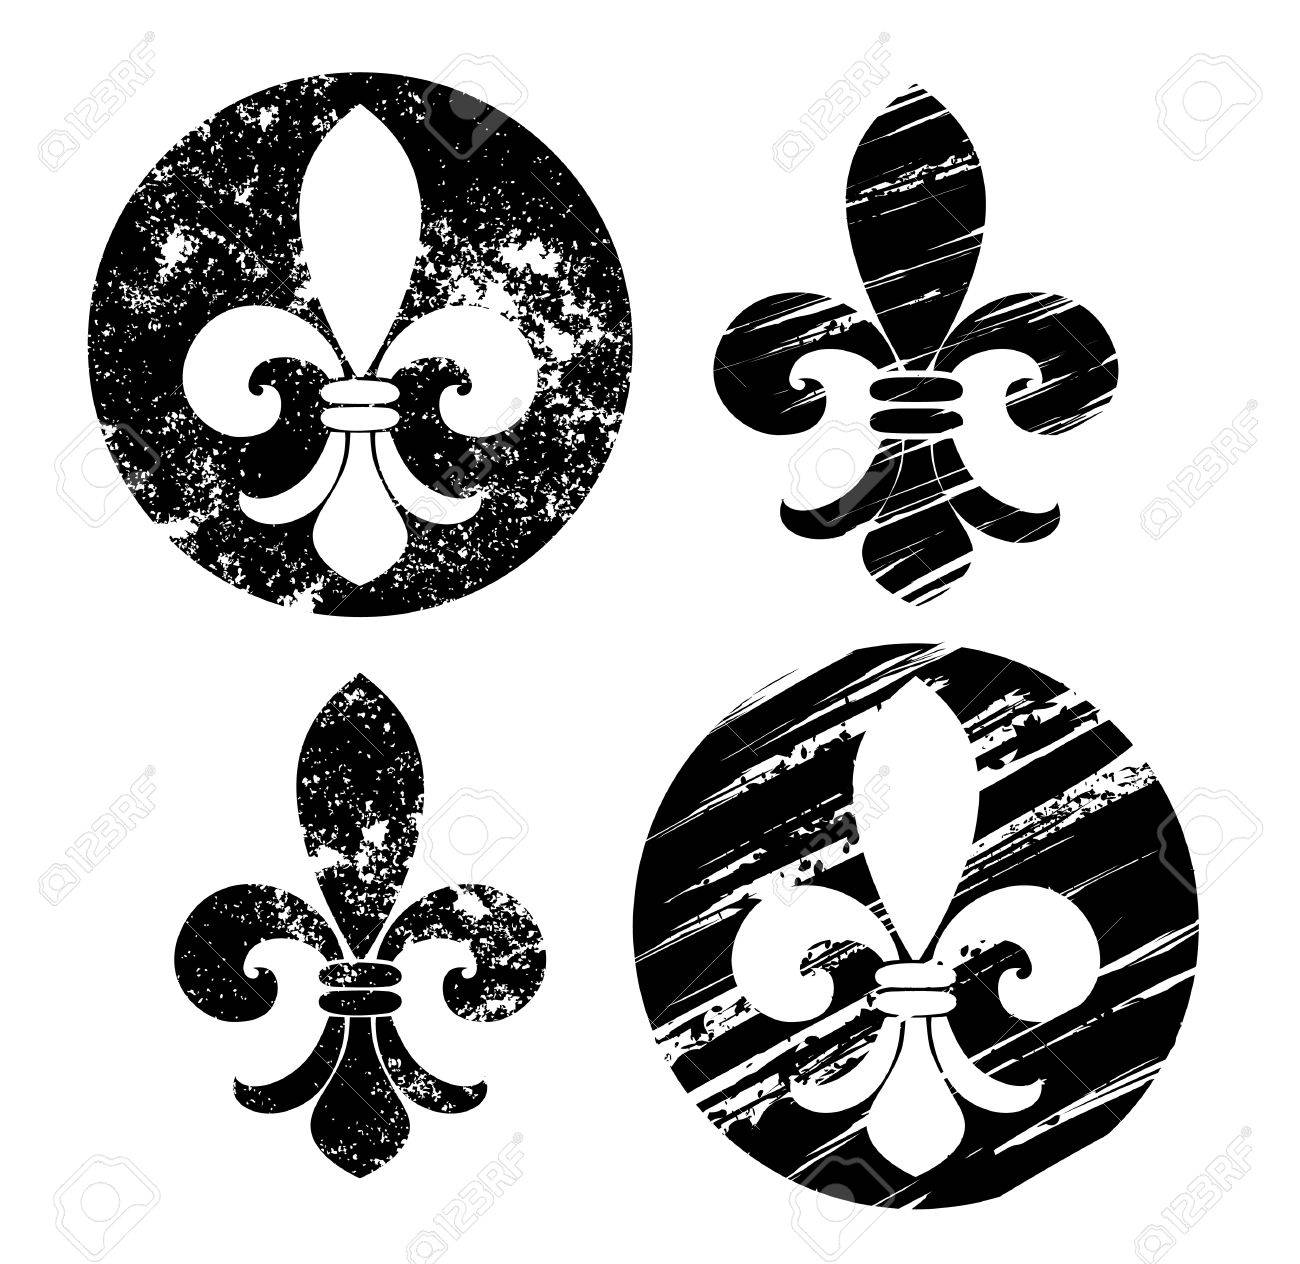 hight resolution of 1300x1264 set of fleur de lis painted in black on a white background